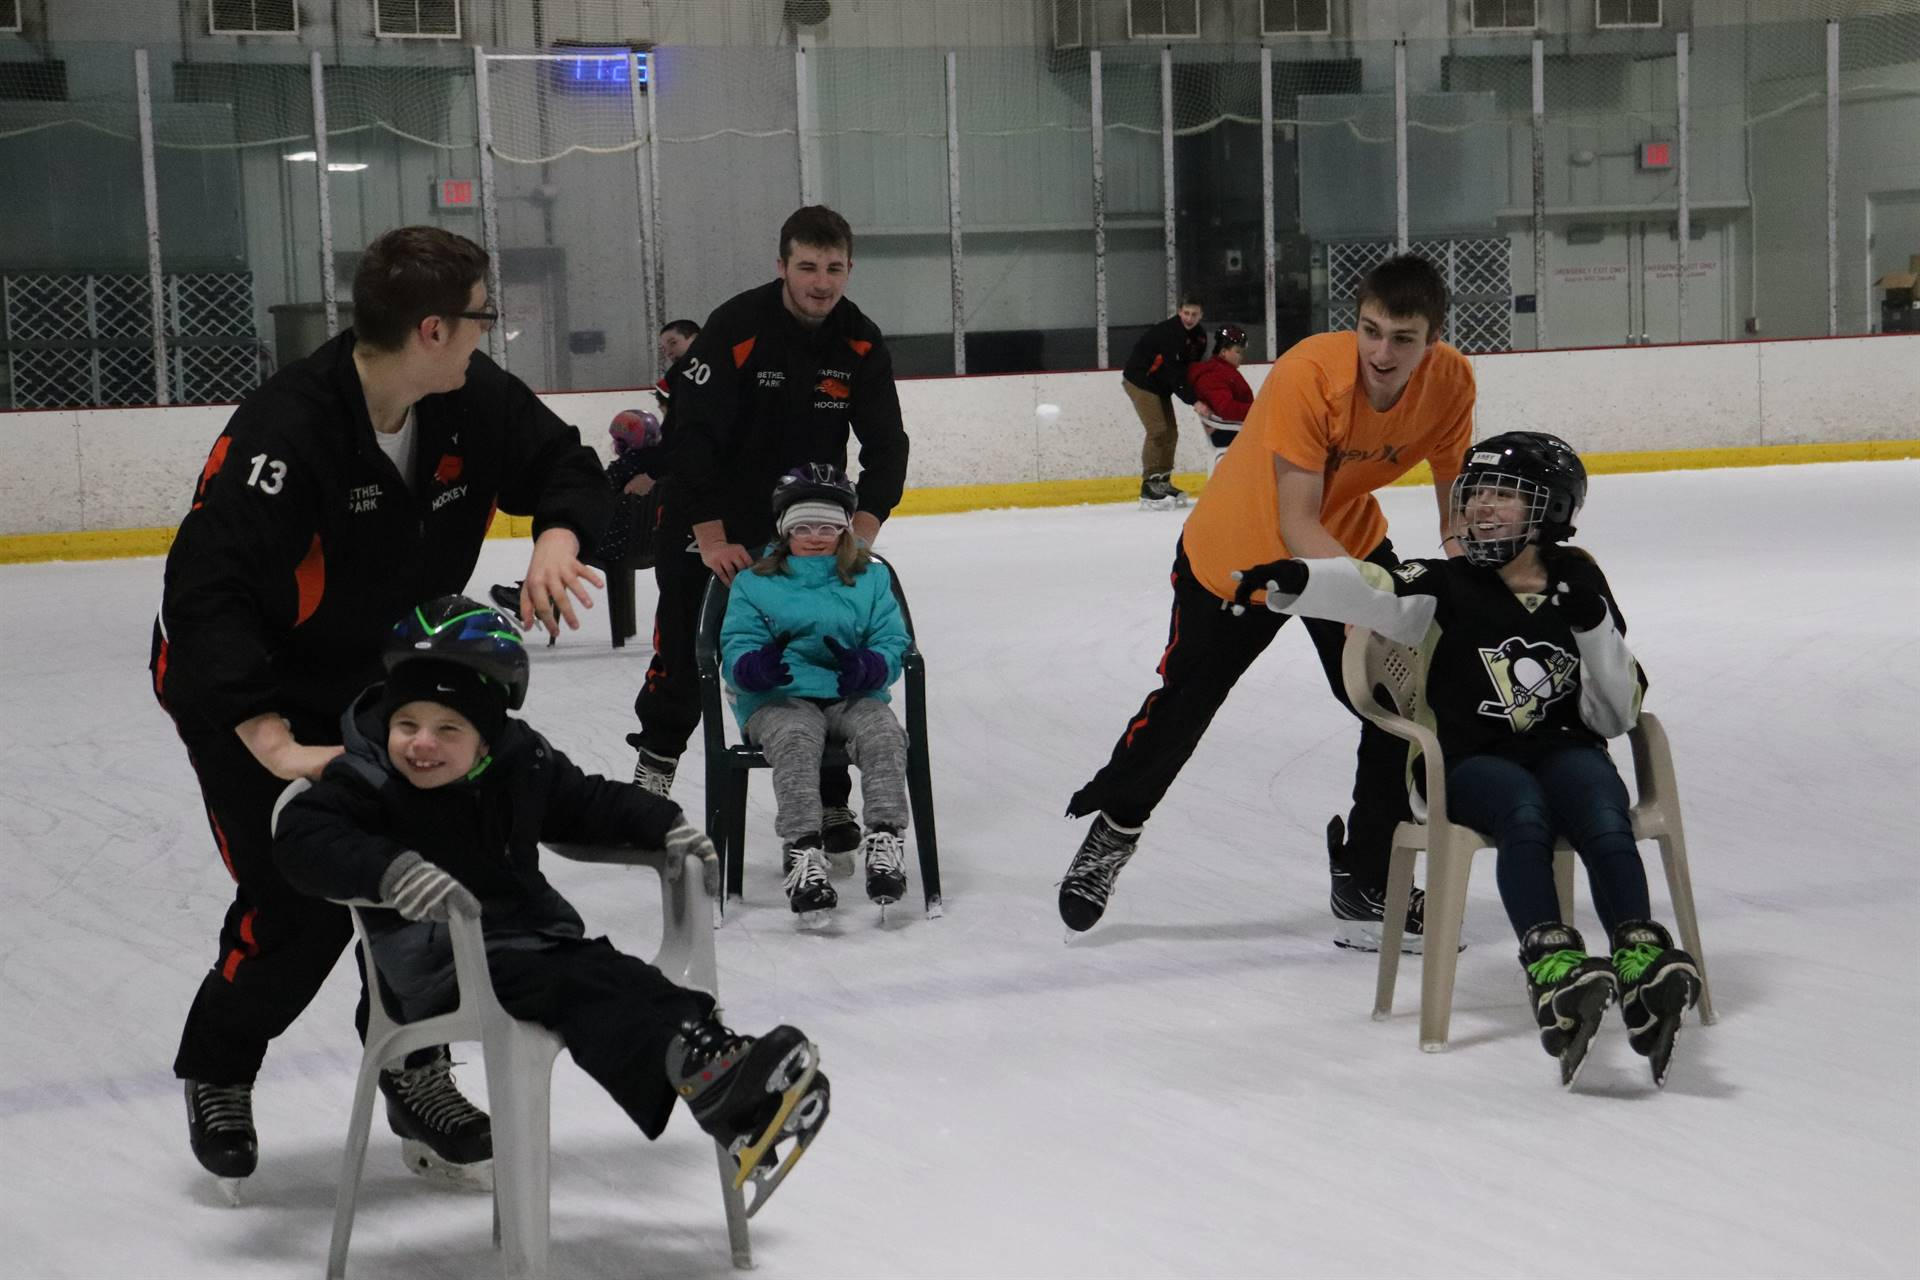 Hockey players pushing students on the ice in chairs